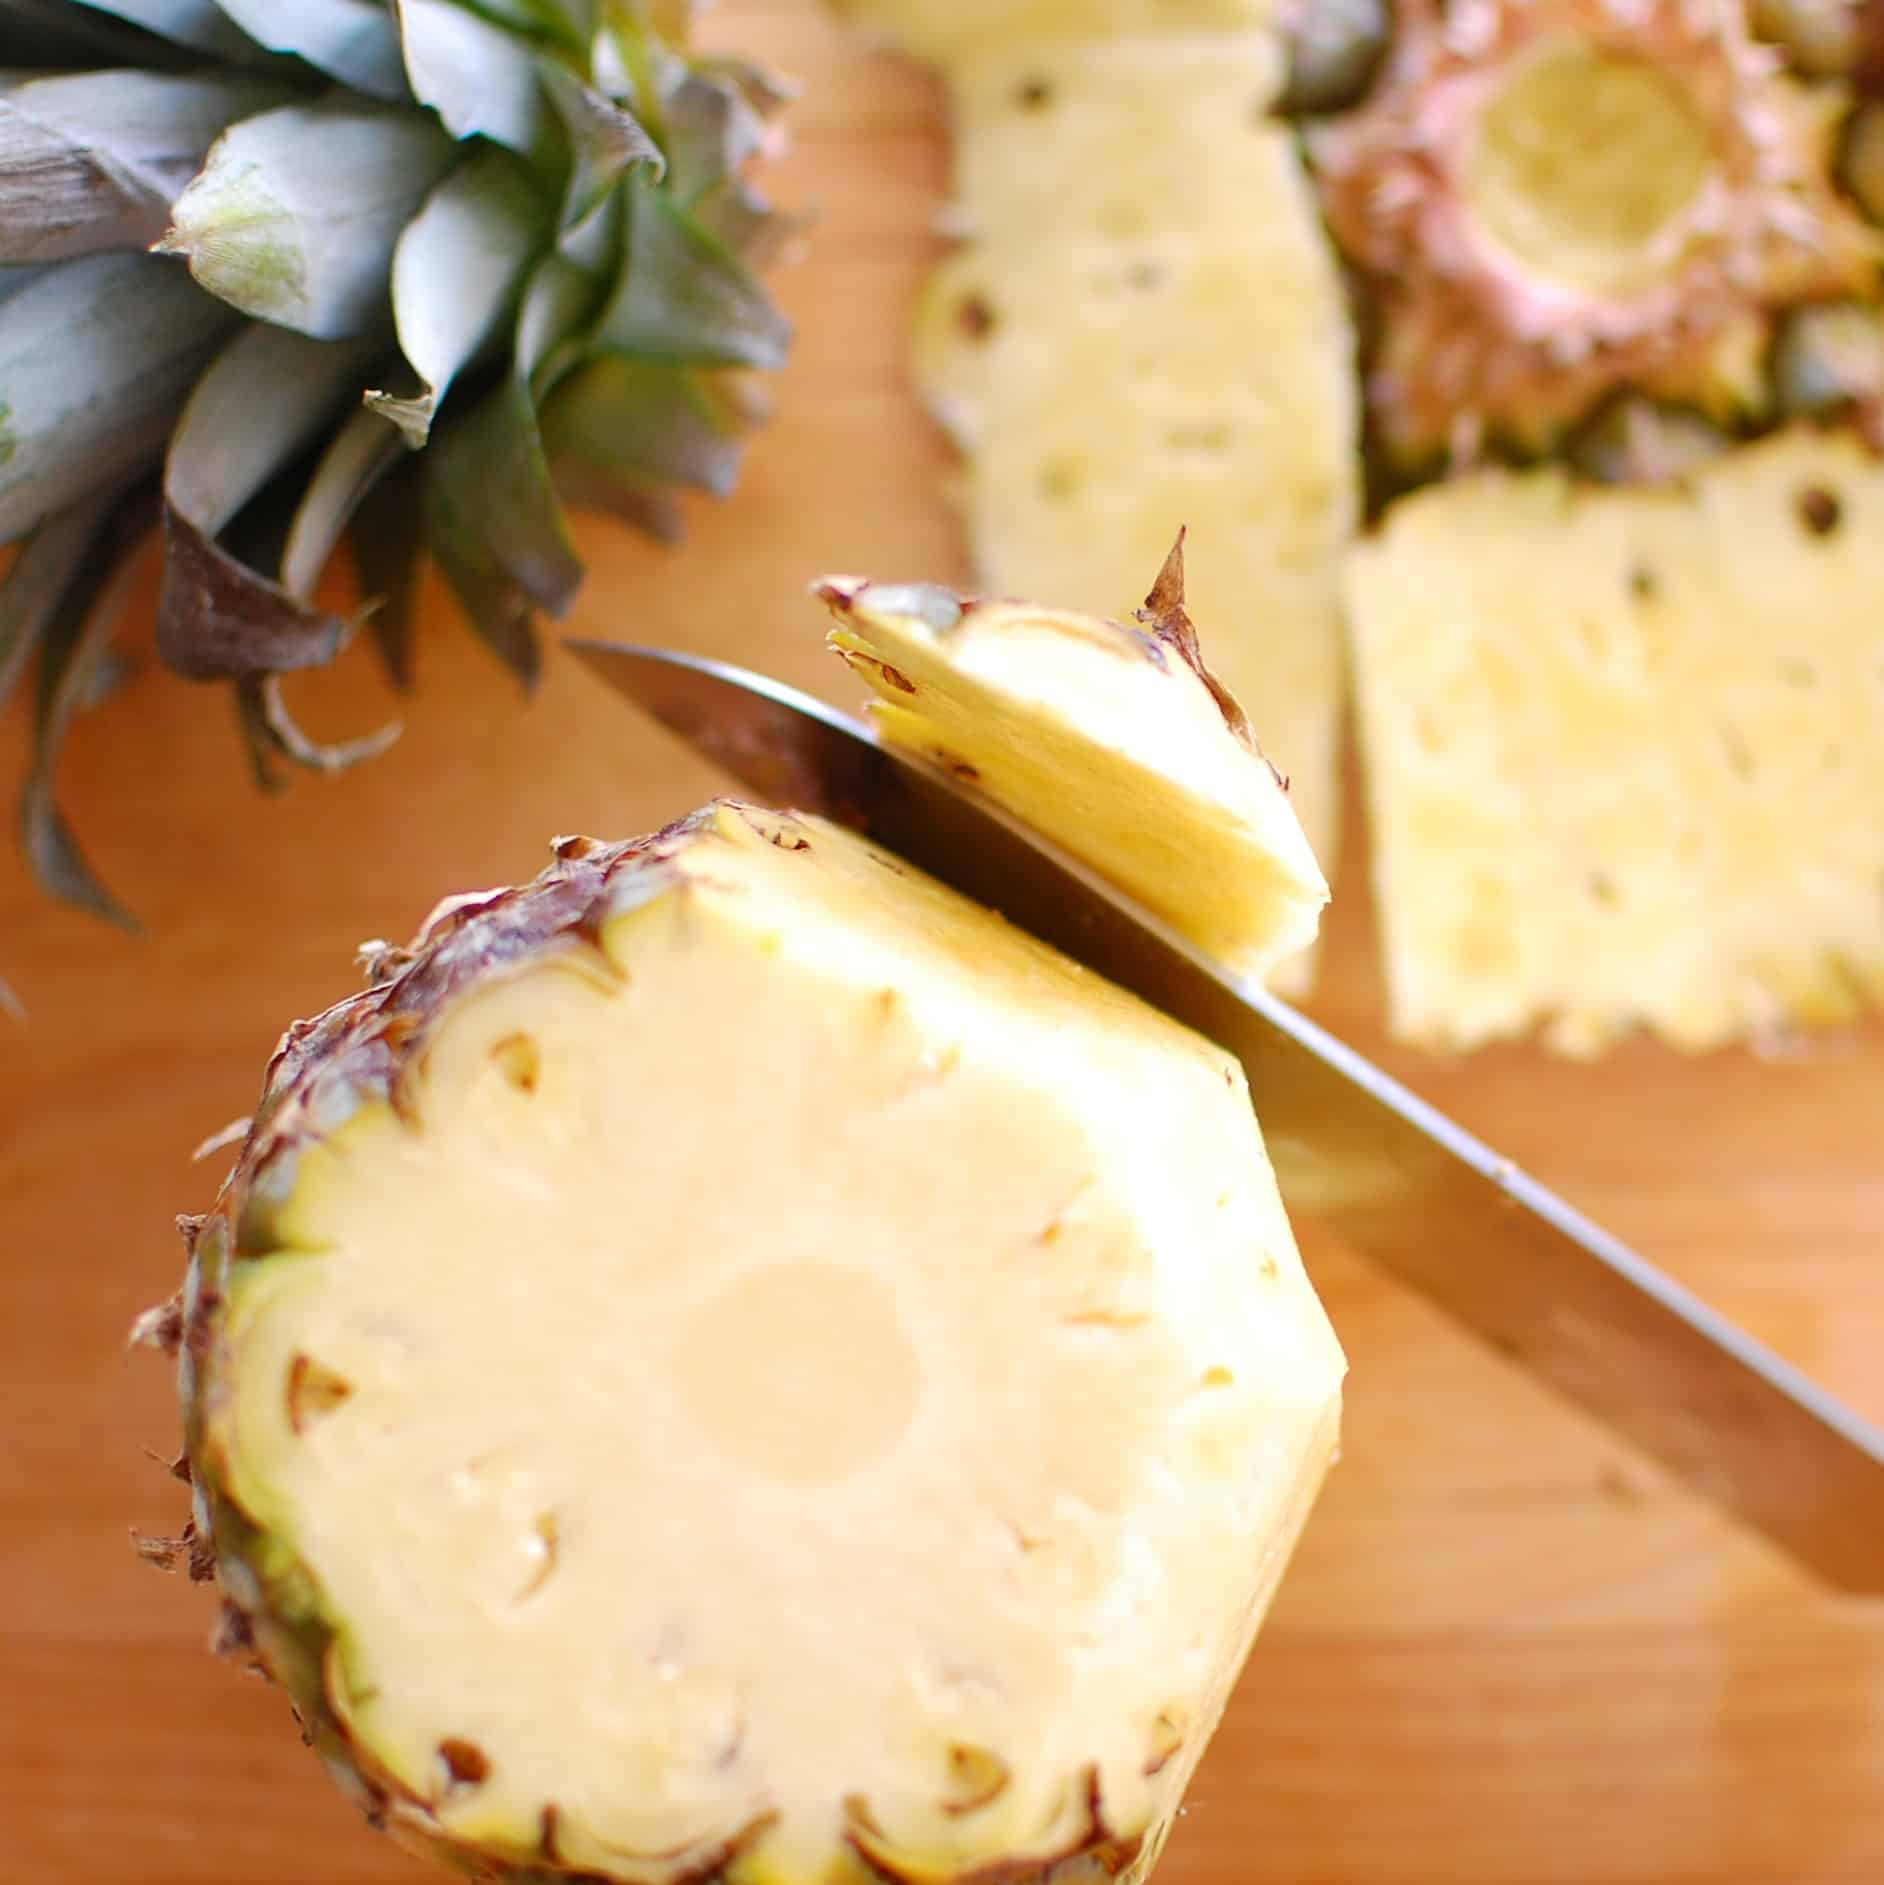 Cleaning pineapple